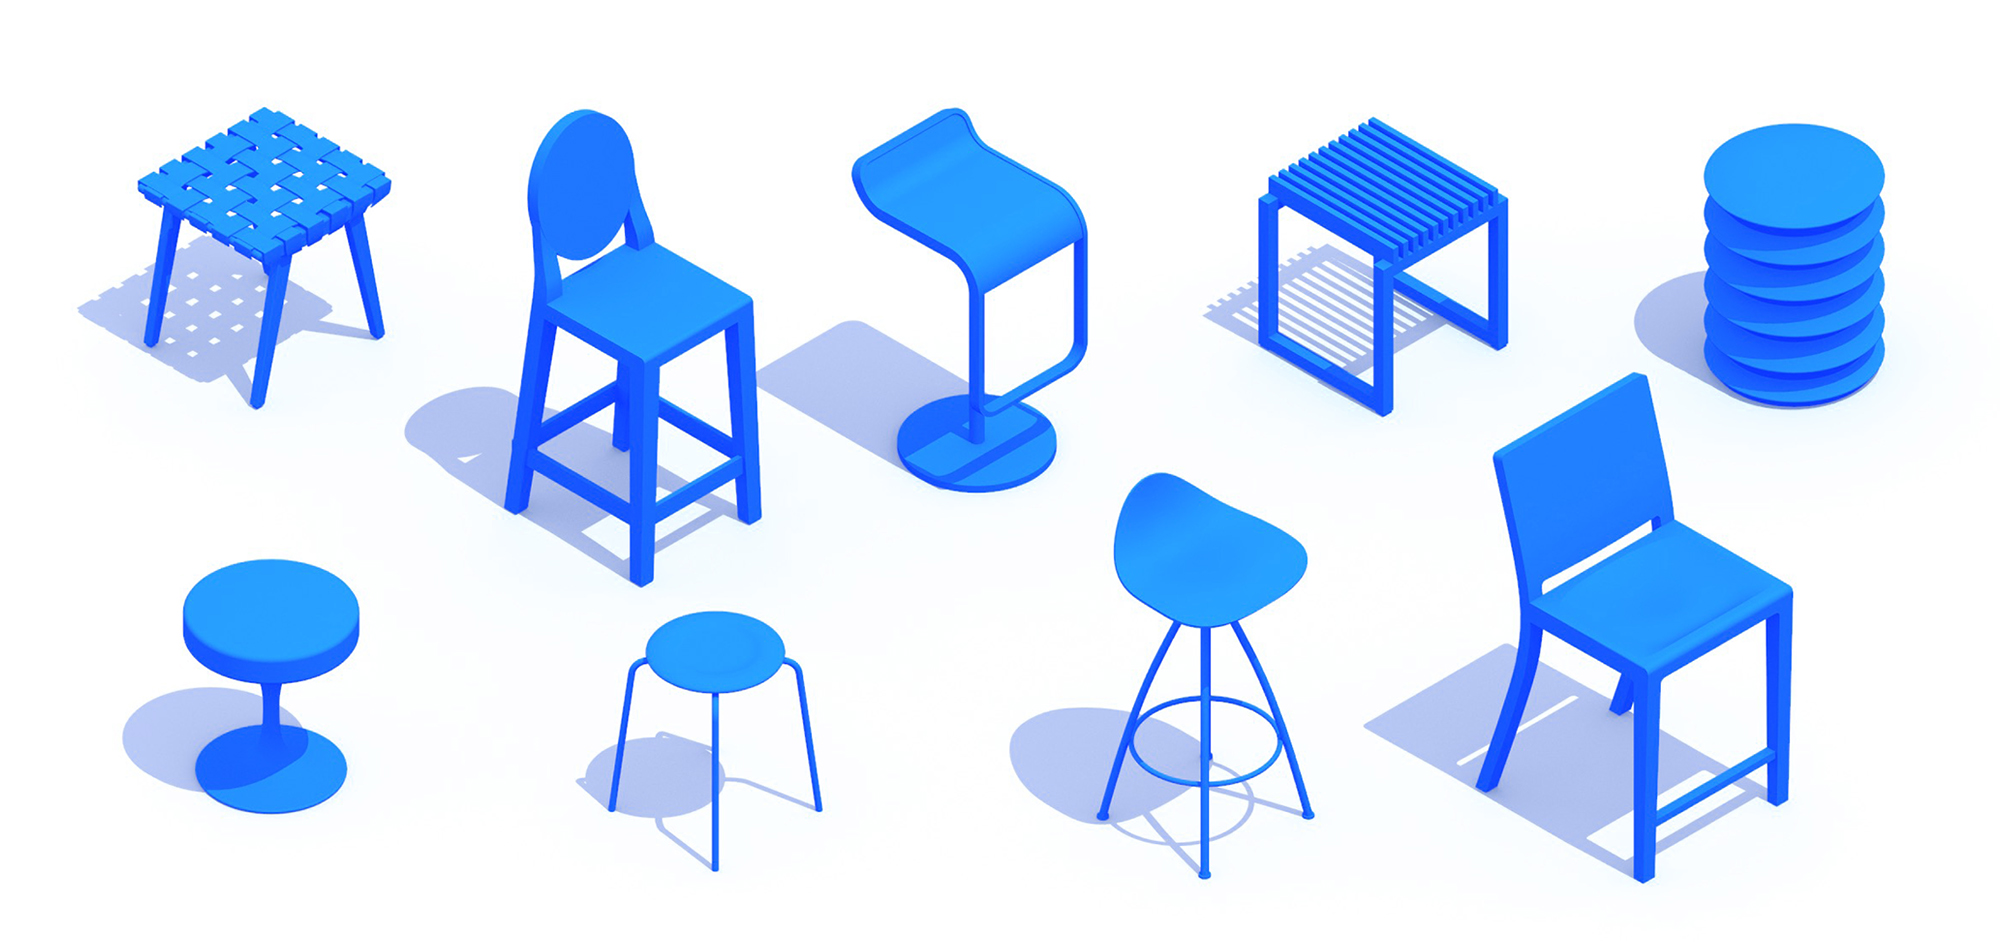 Collection of 3D Stools showing a diversity of sizes, styles, and types